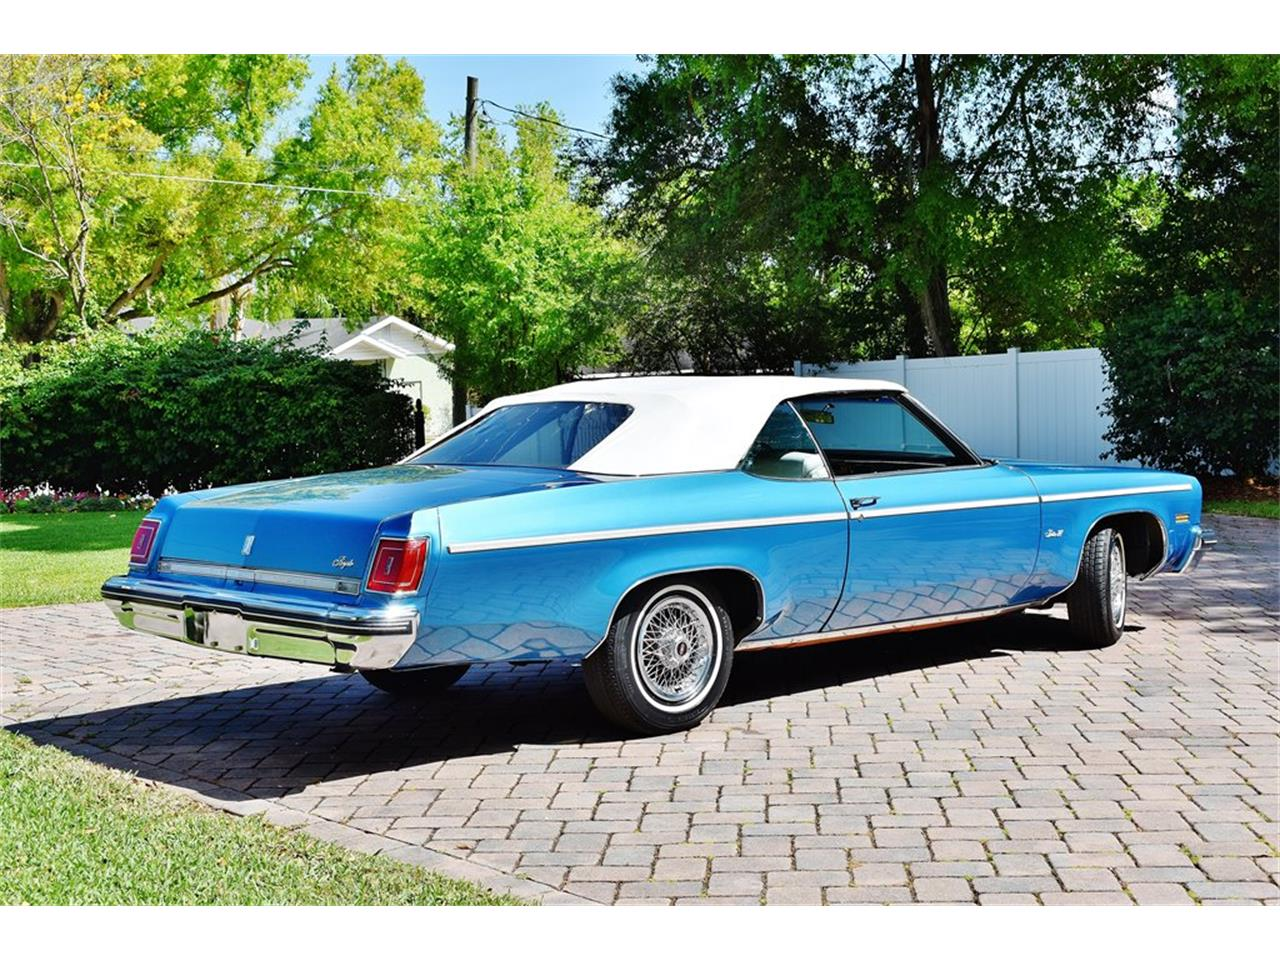 Large Picture of 1975 Oldsmobile Delta 88 located in Florida - $24,900.00 - PKMX